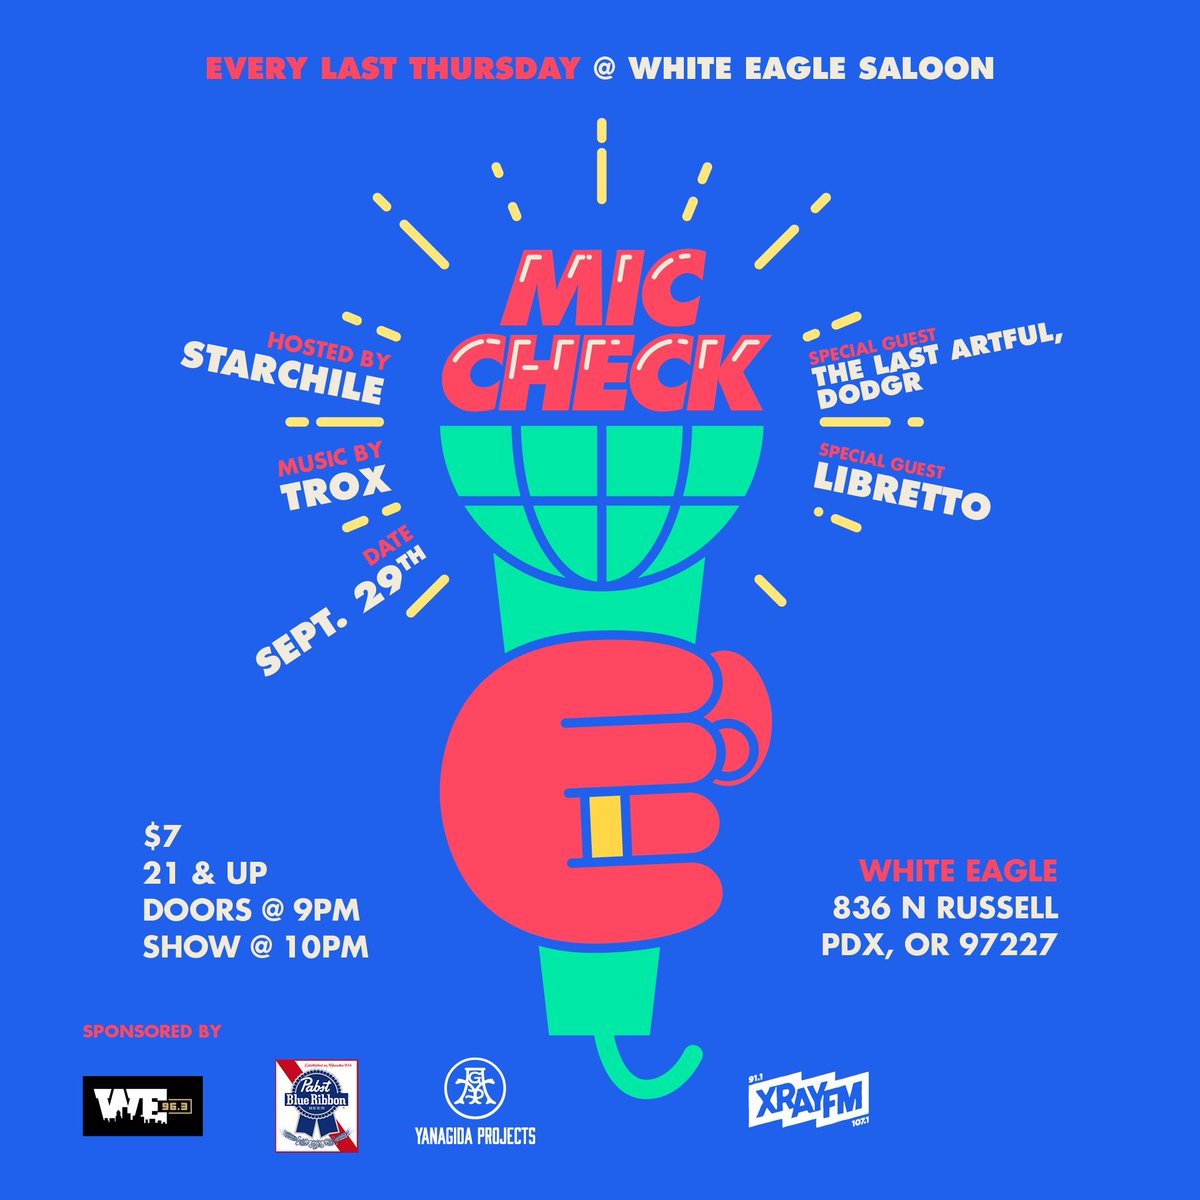 We got @TheLastArtful & @slumfunk rockin live on the 29th at White Eagle! Y'all might wanna come thru.... #pdxebents https://t.co/QOget1NzXS